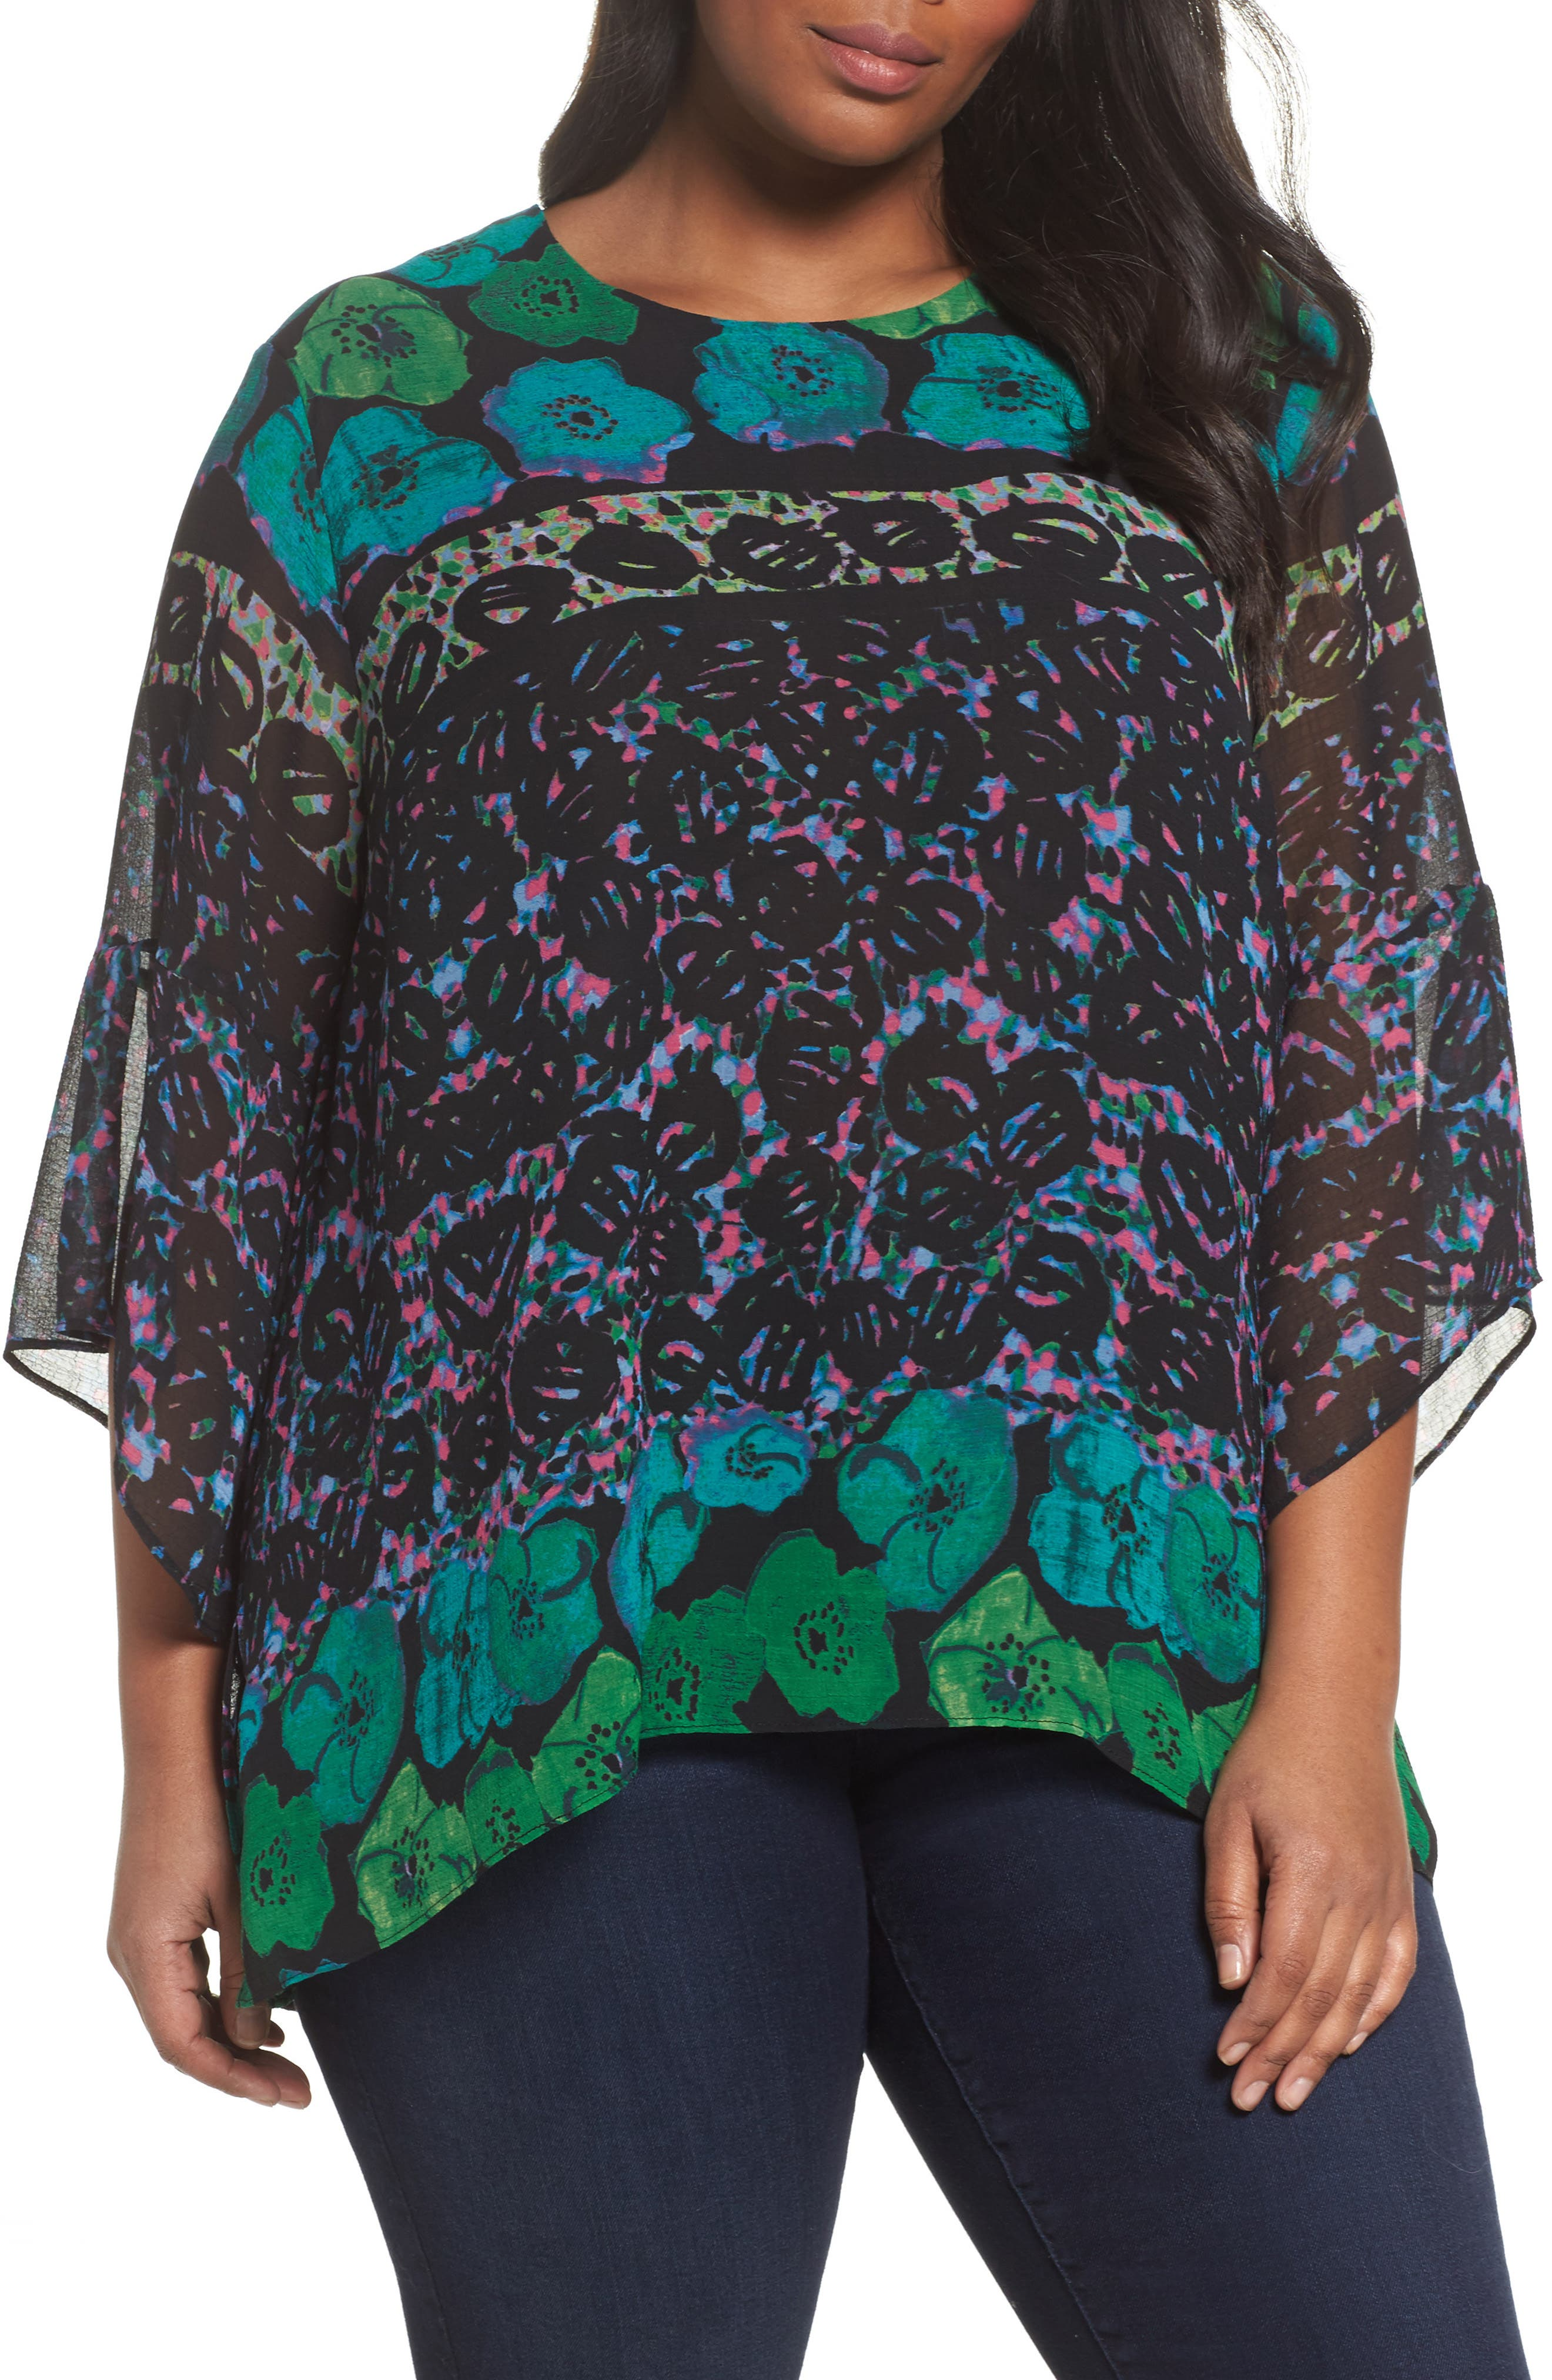 Alternate Image 1 Selected - RACHEL Rachel Roy Print Bell Sleeve Blouse (Plus Size)